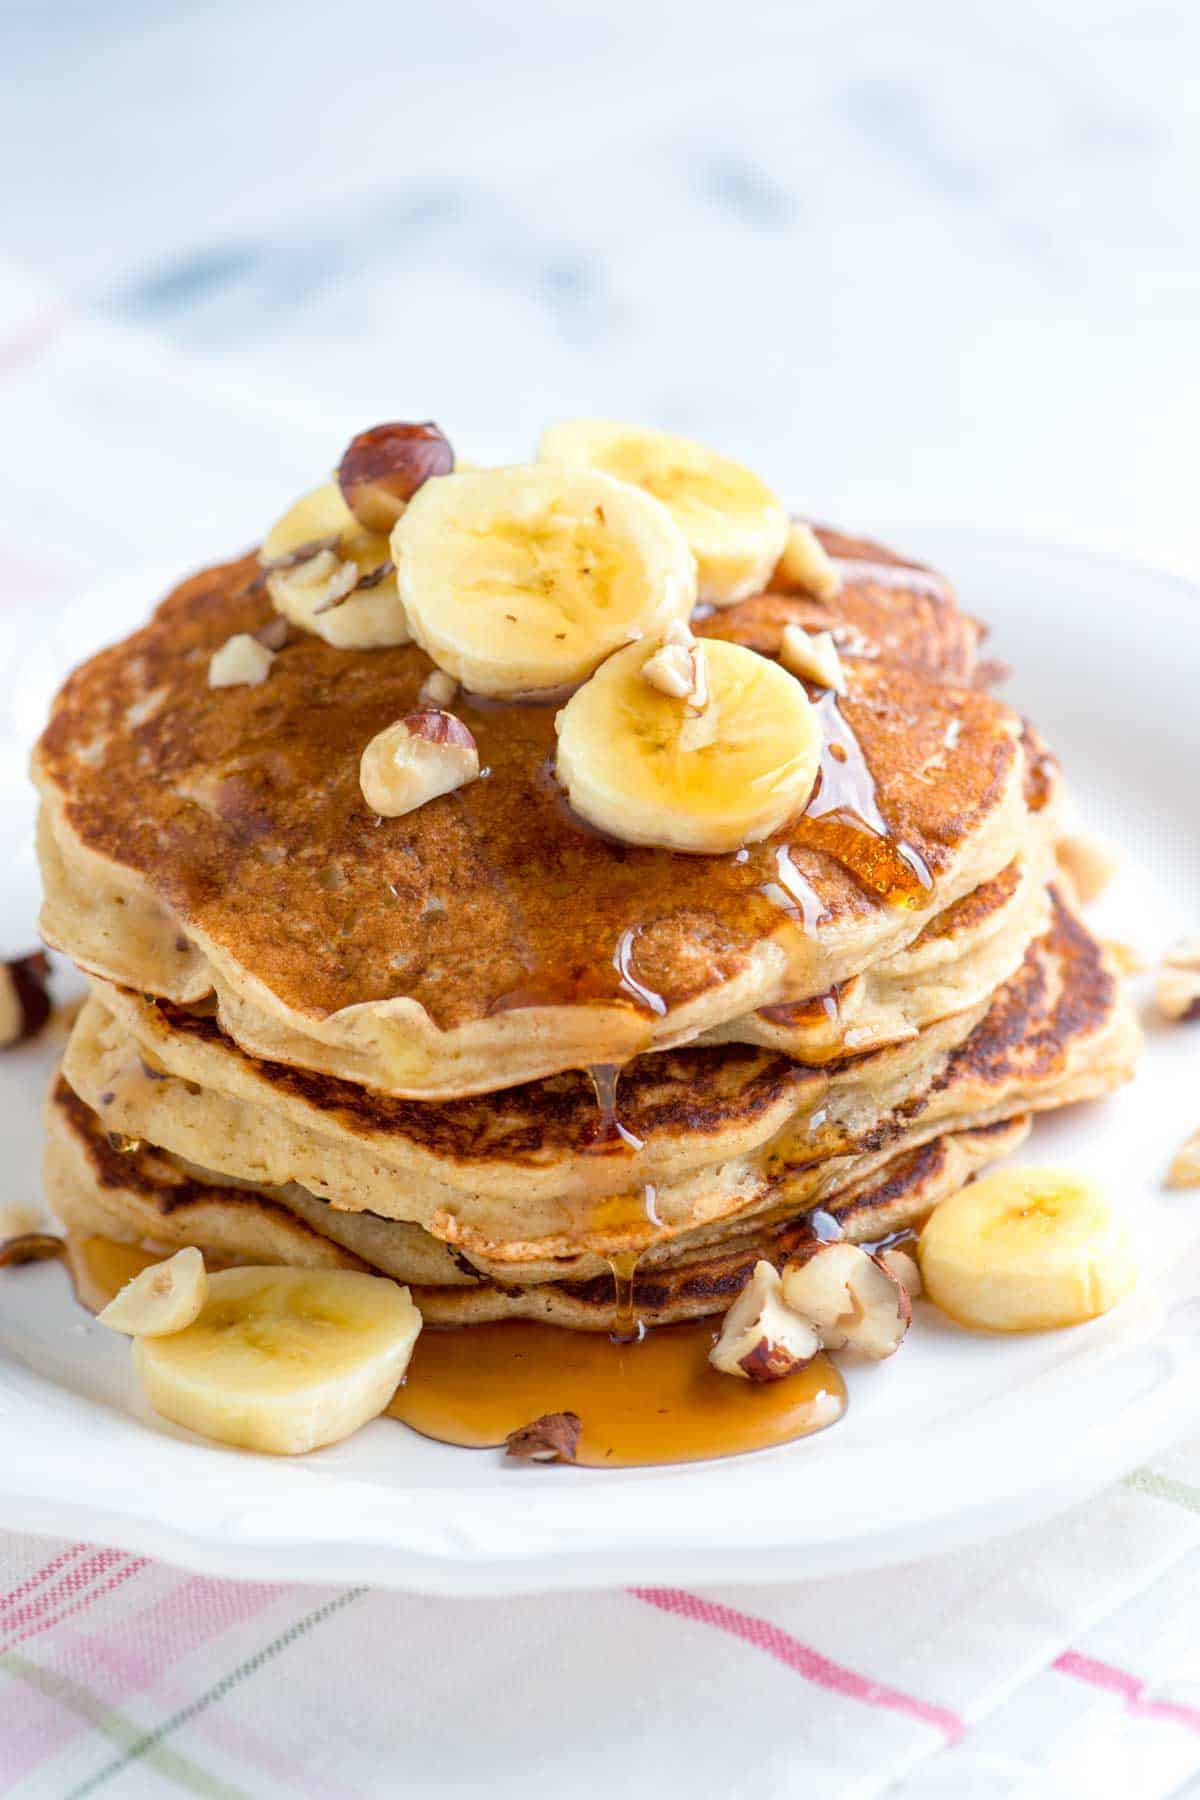 How to Make Spiced Buttermilk Banana Pancakes